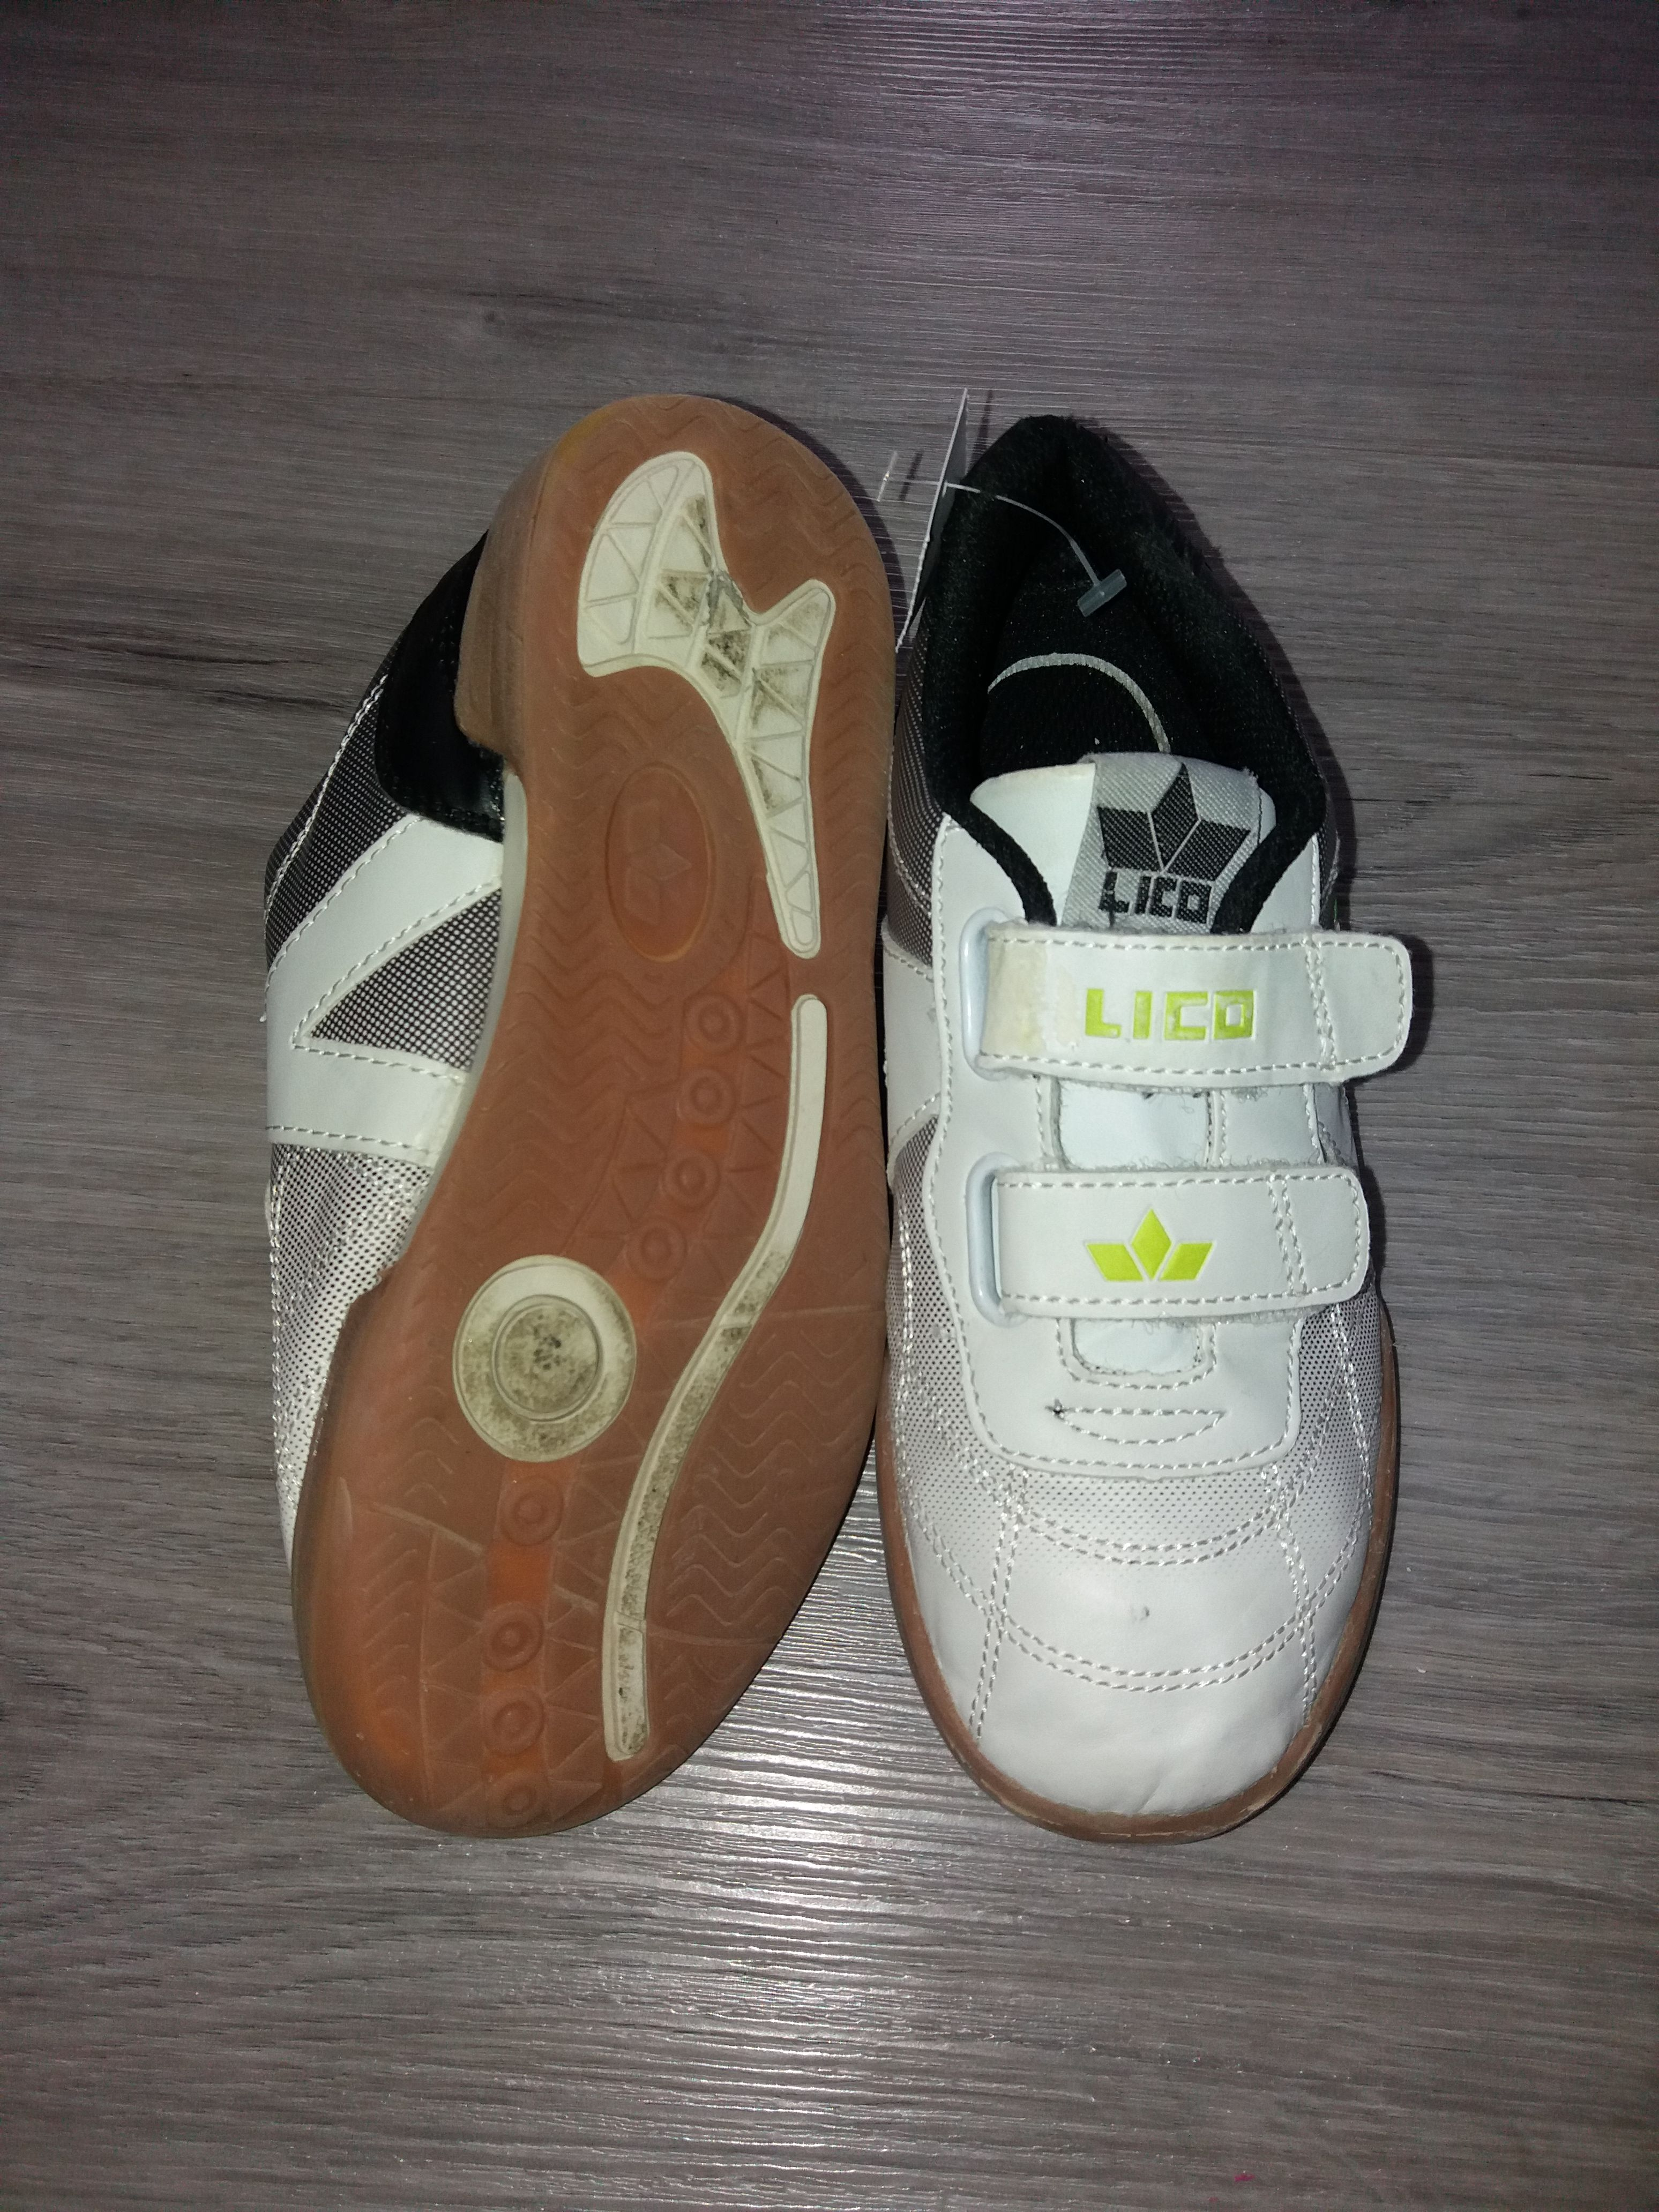 Turnschuhe Lico Gr. 33